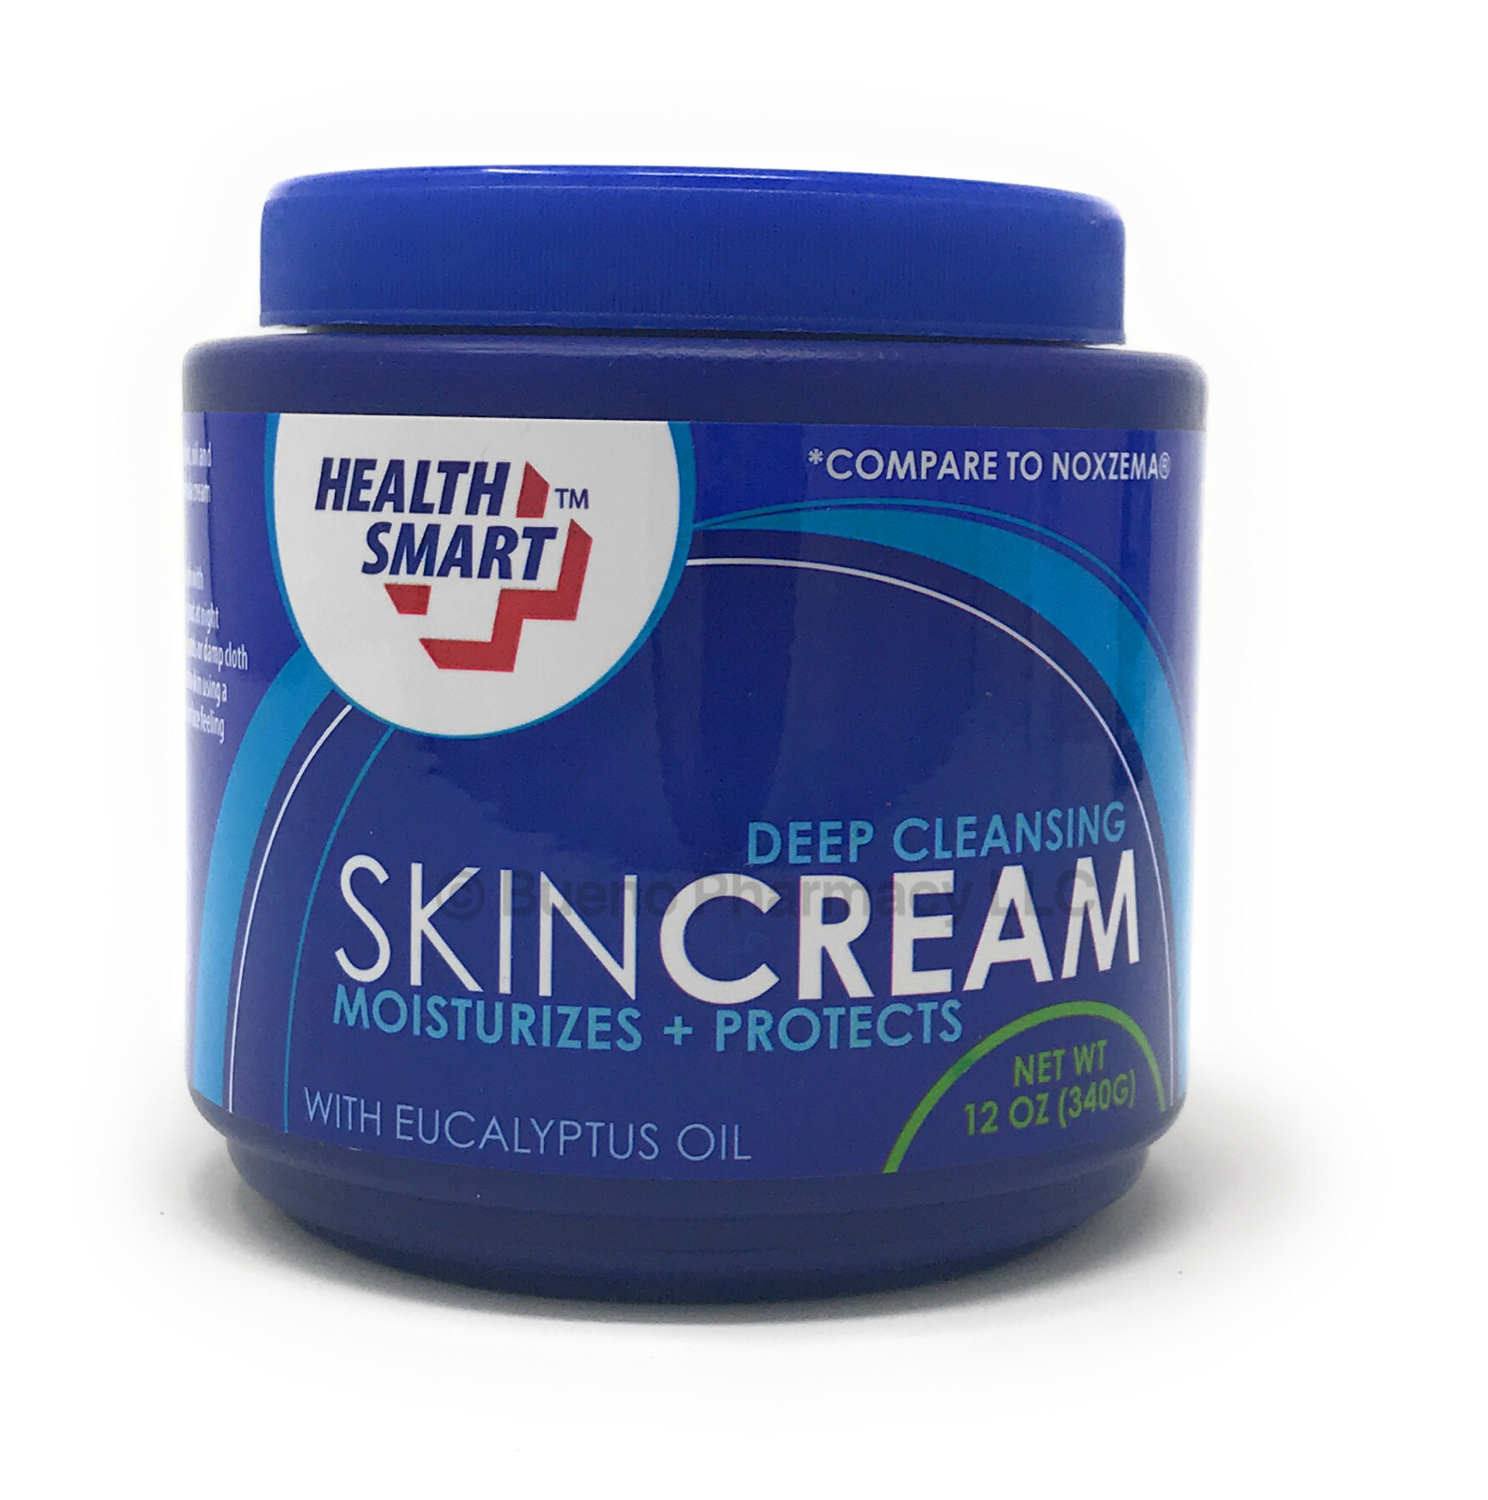 Skin Cream Deep Cleansing HS 12 OZ